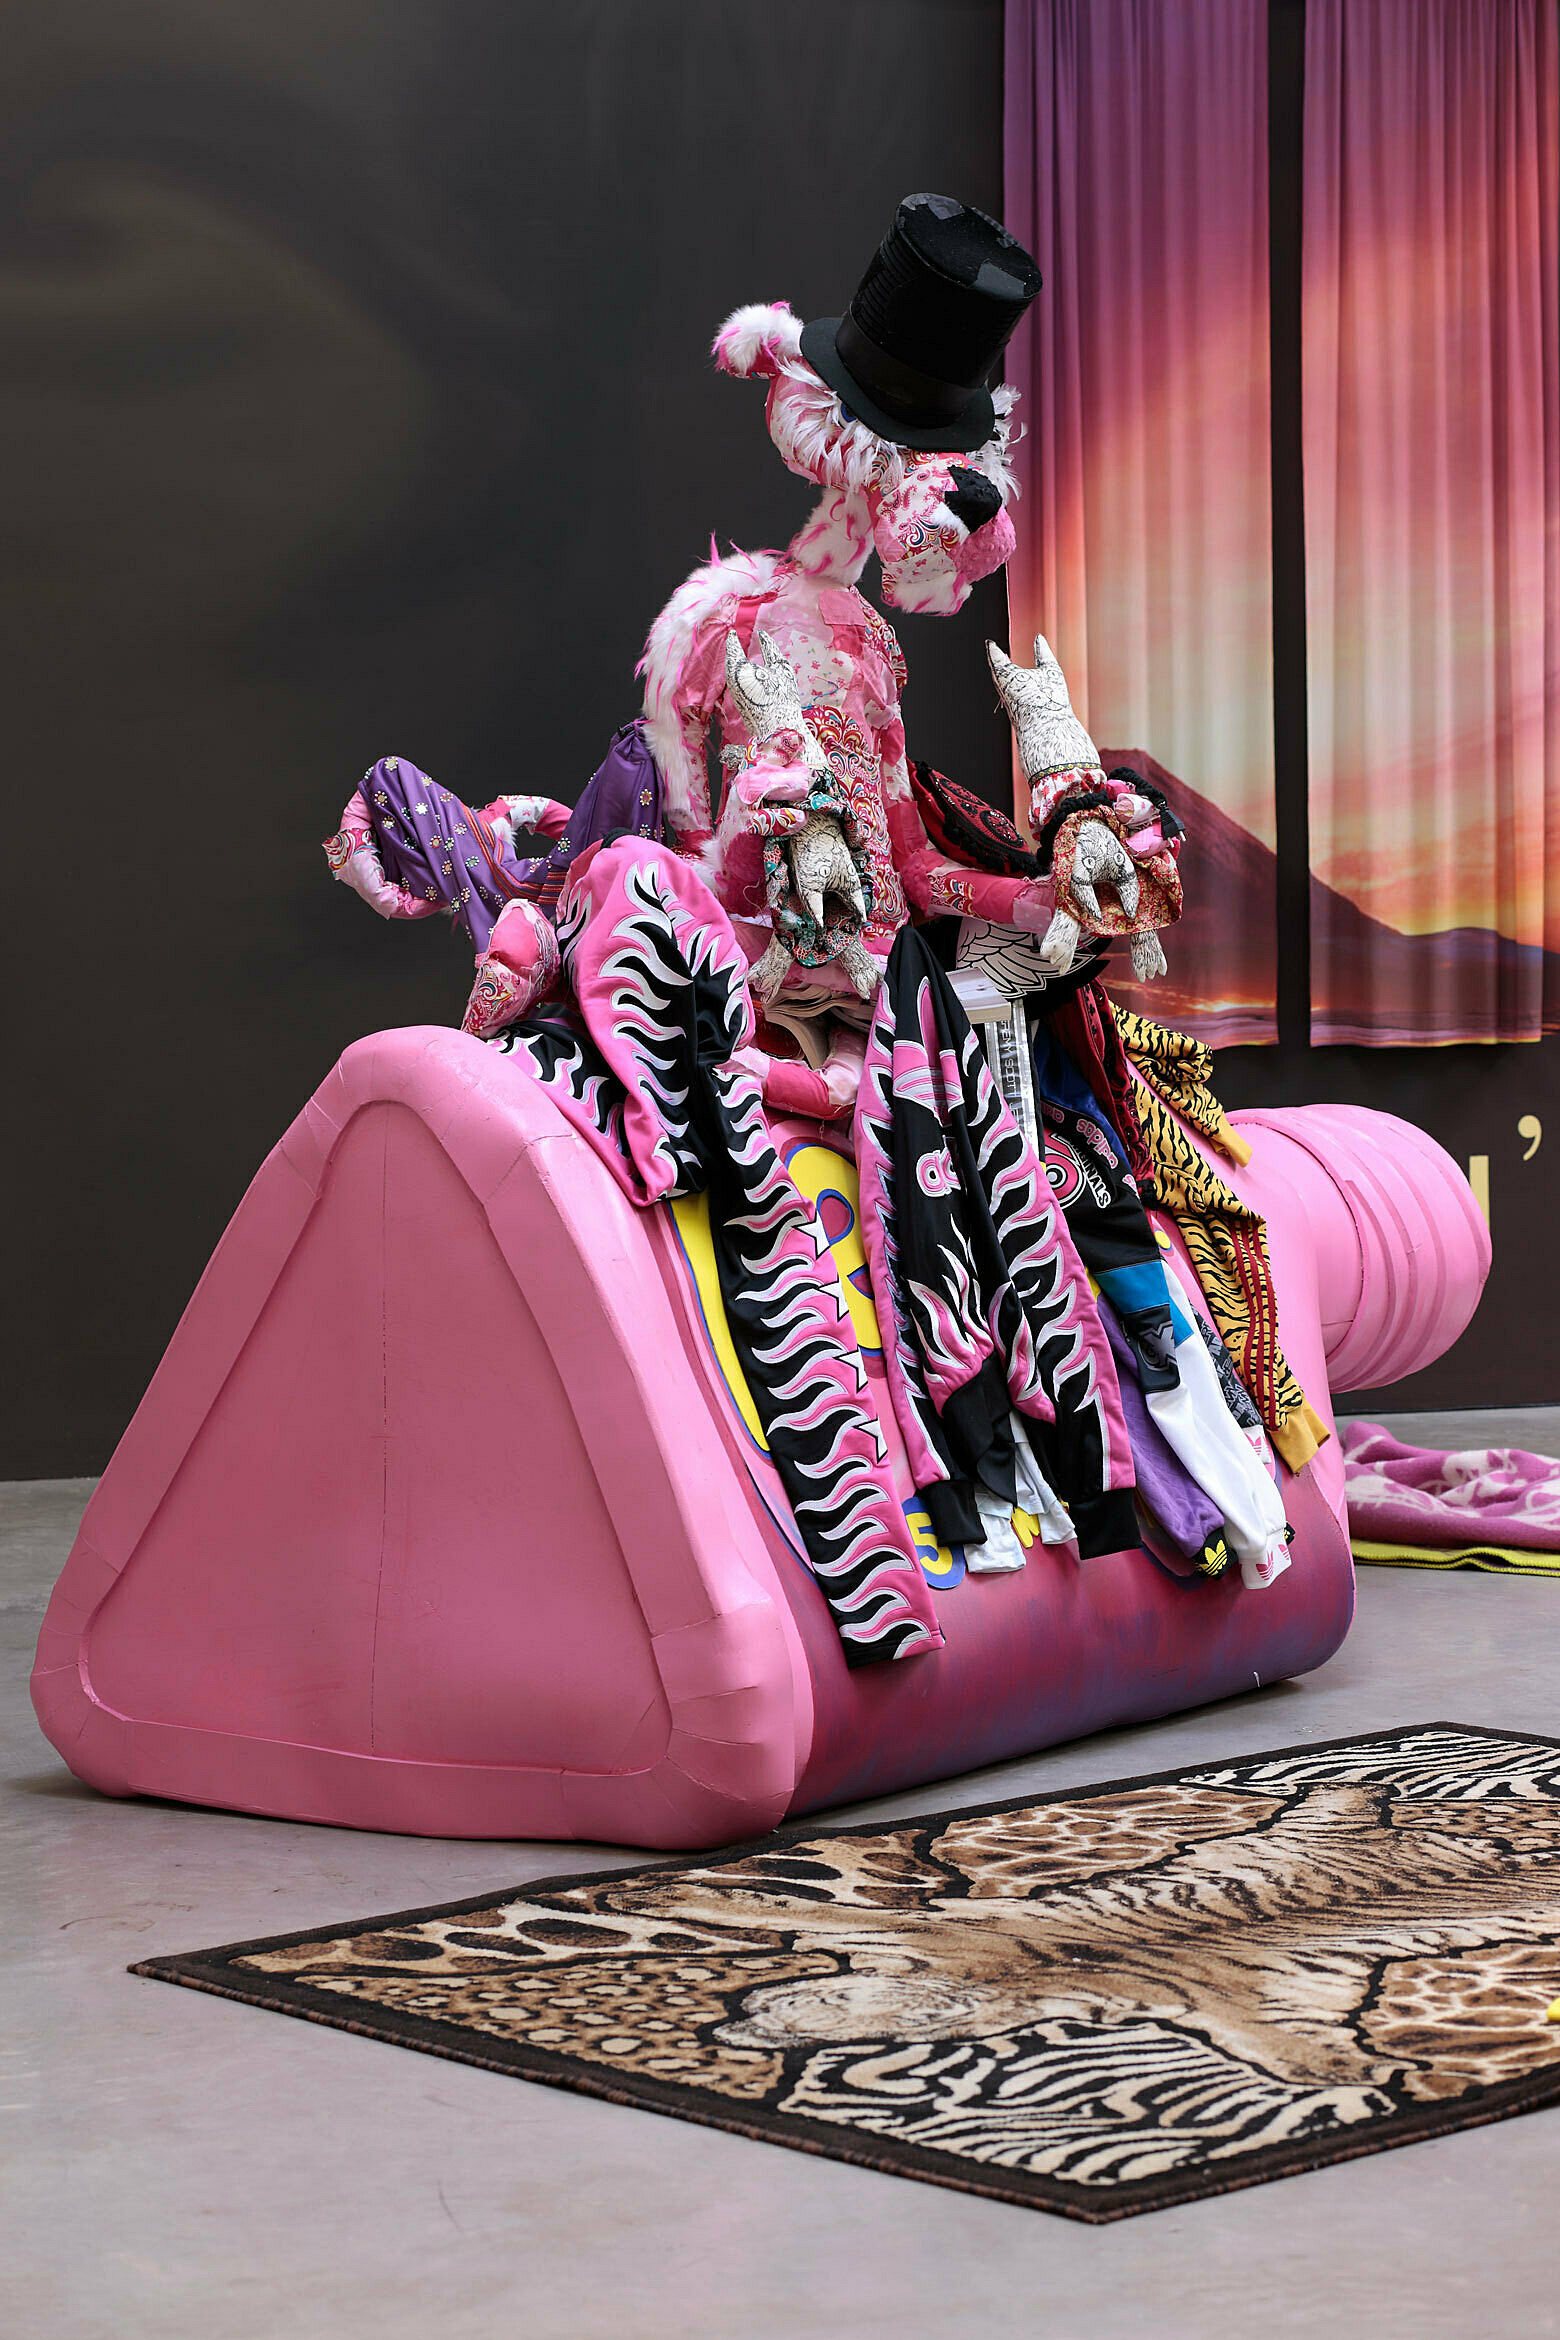 A cartoon model of a pink panther sitting on a pink triangle sofa.